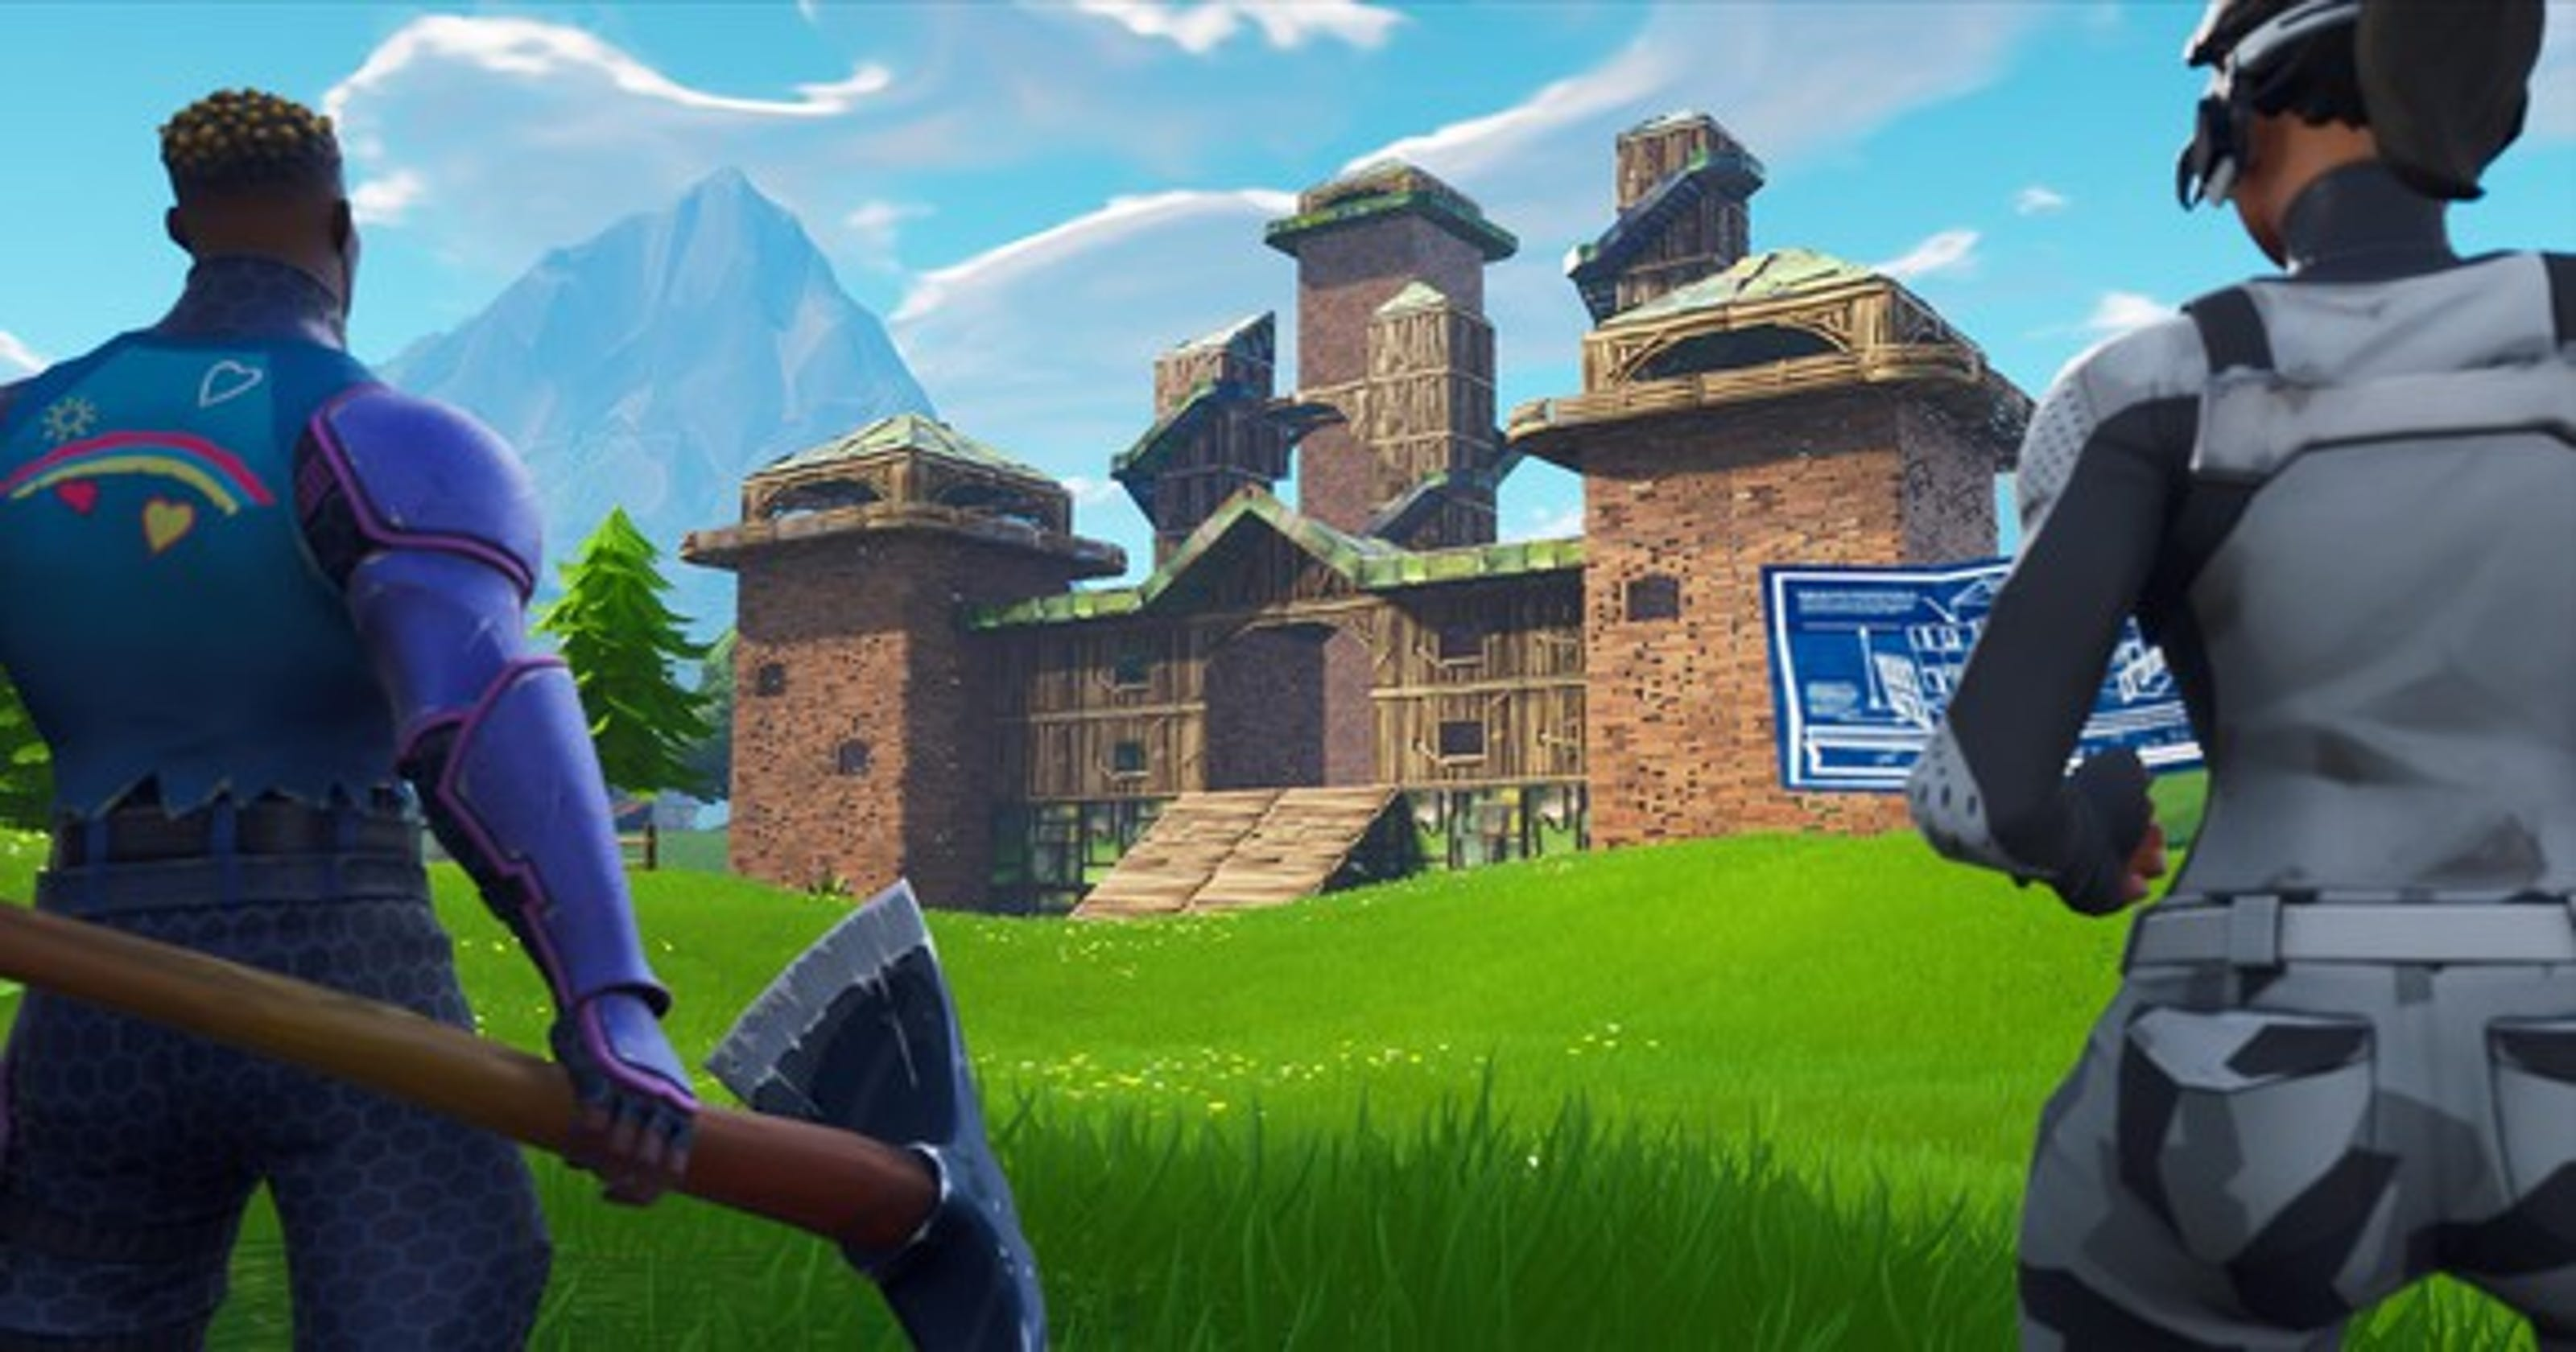 Fortnite And Its Success Can Attract Bad Players